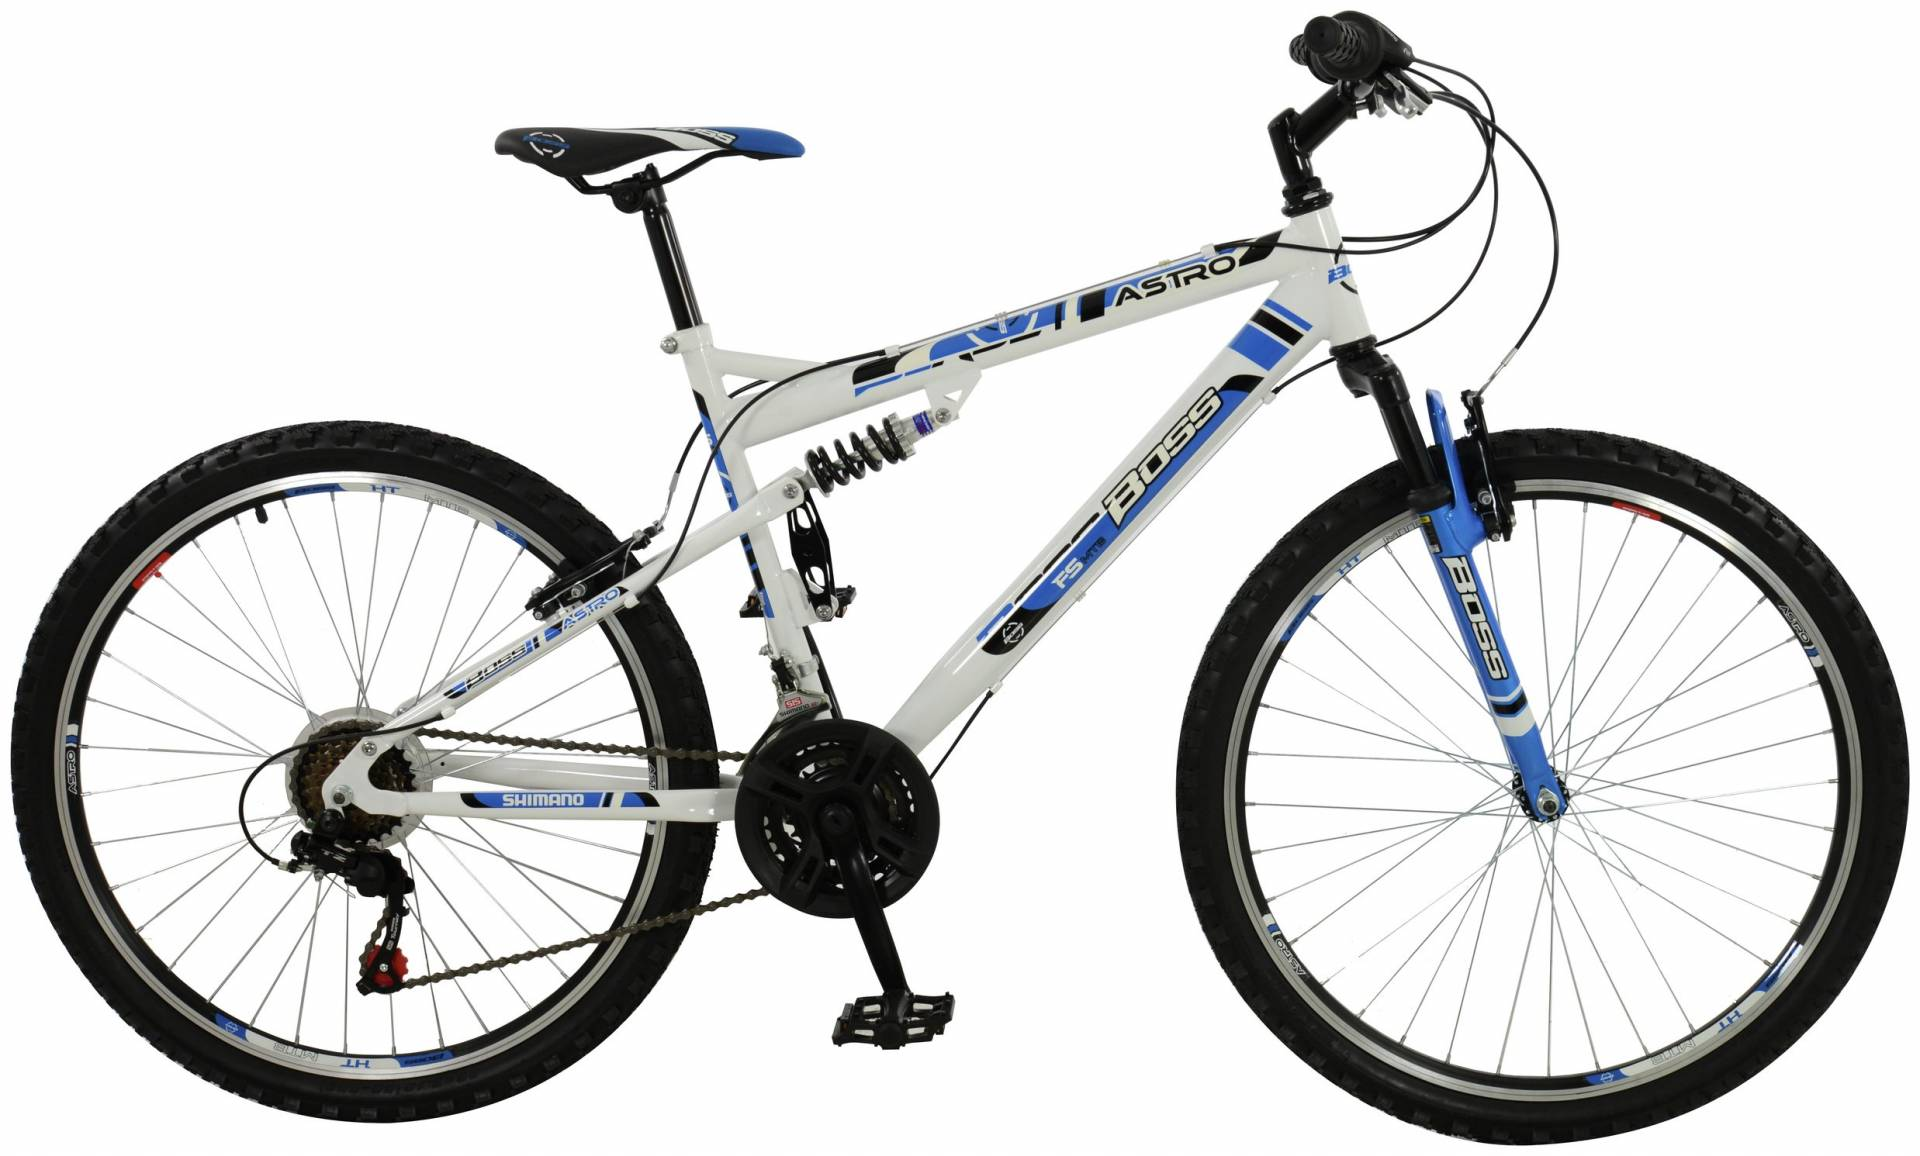 Boss Astro 26 inch Wheel Size Mens Mountain Bike from boss